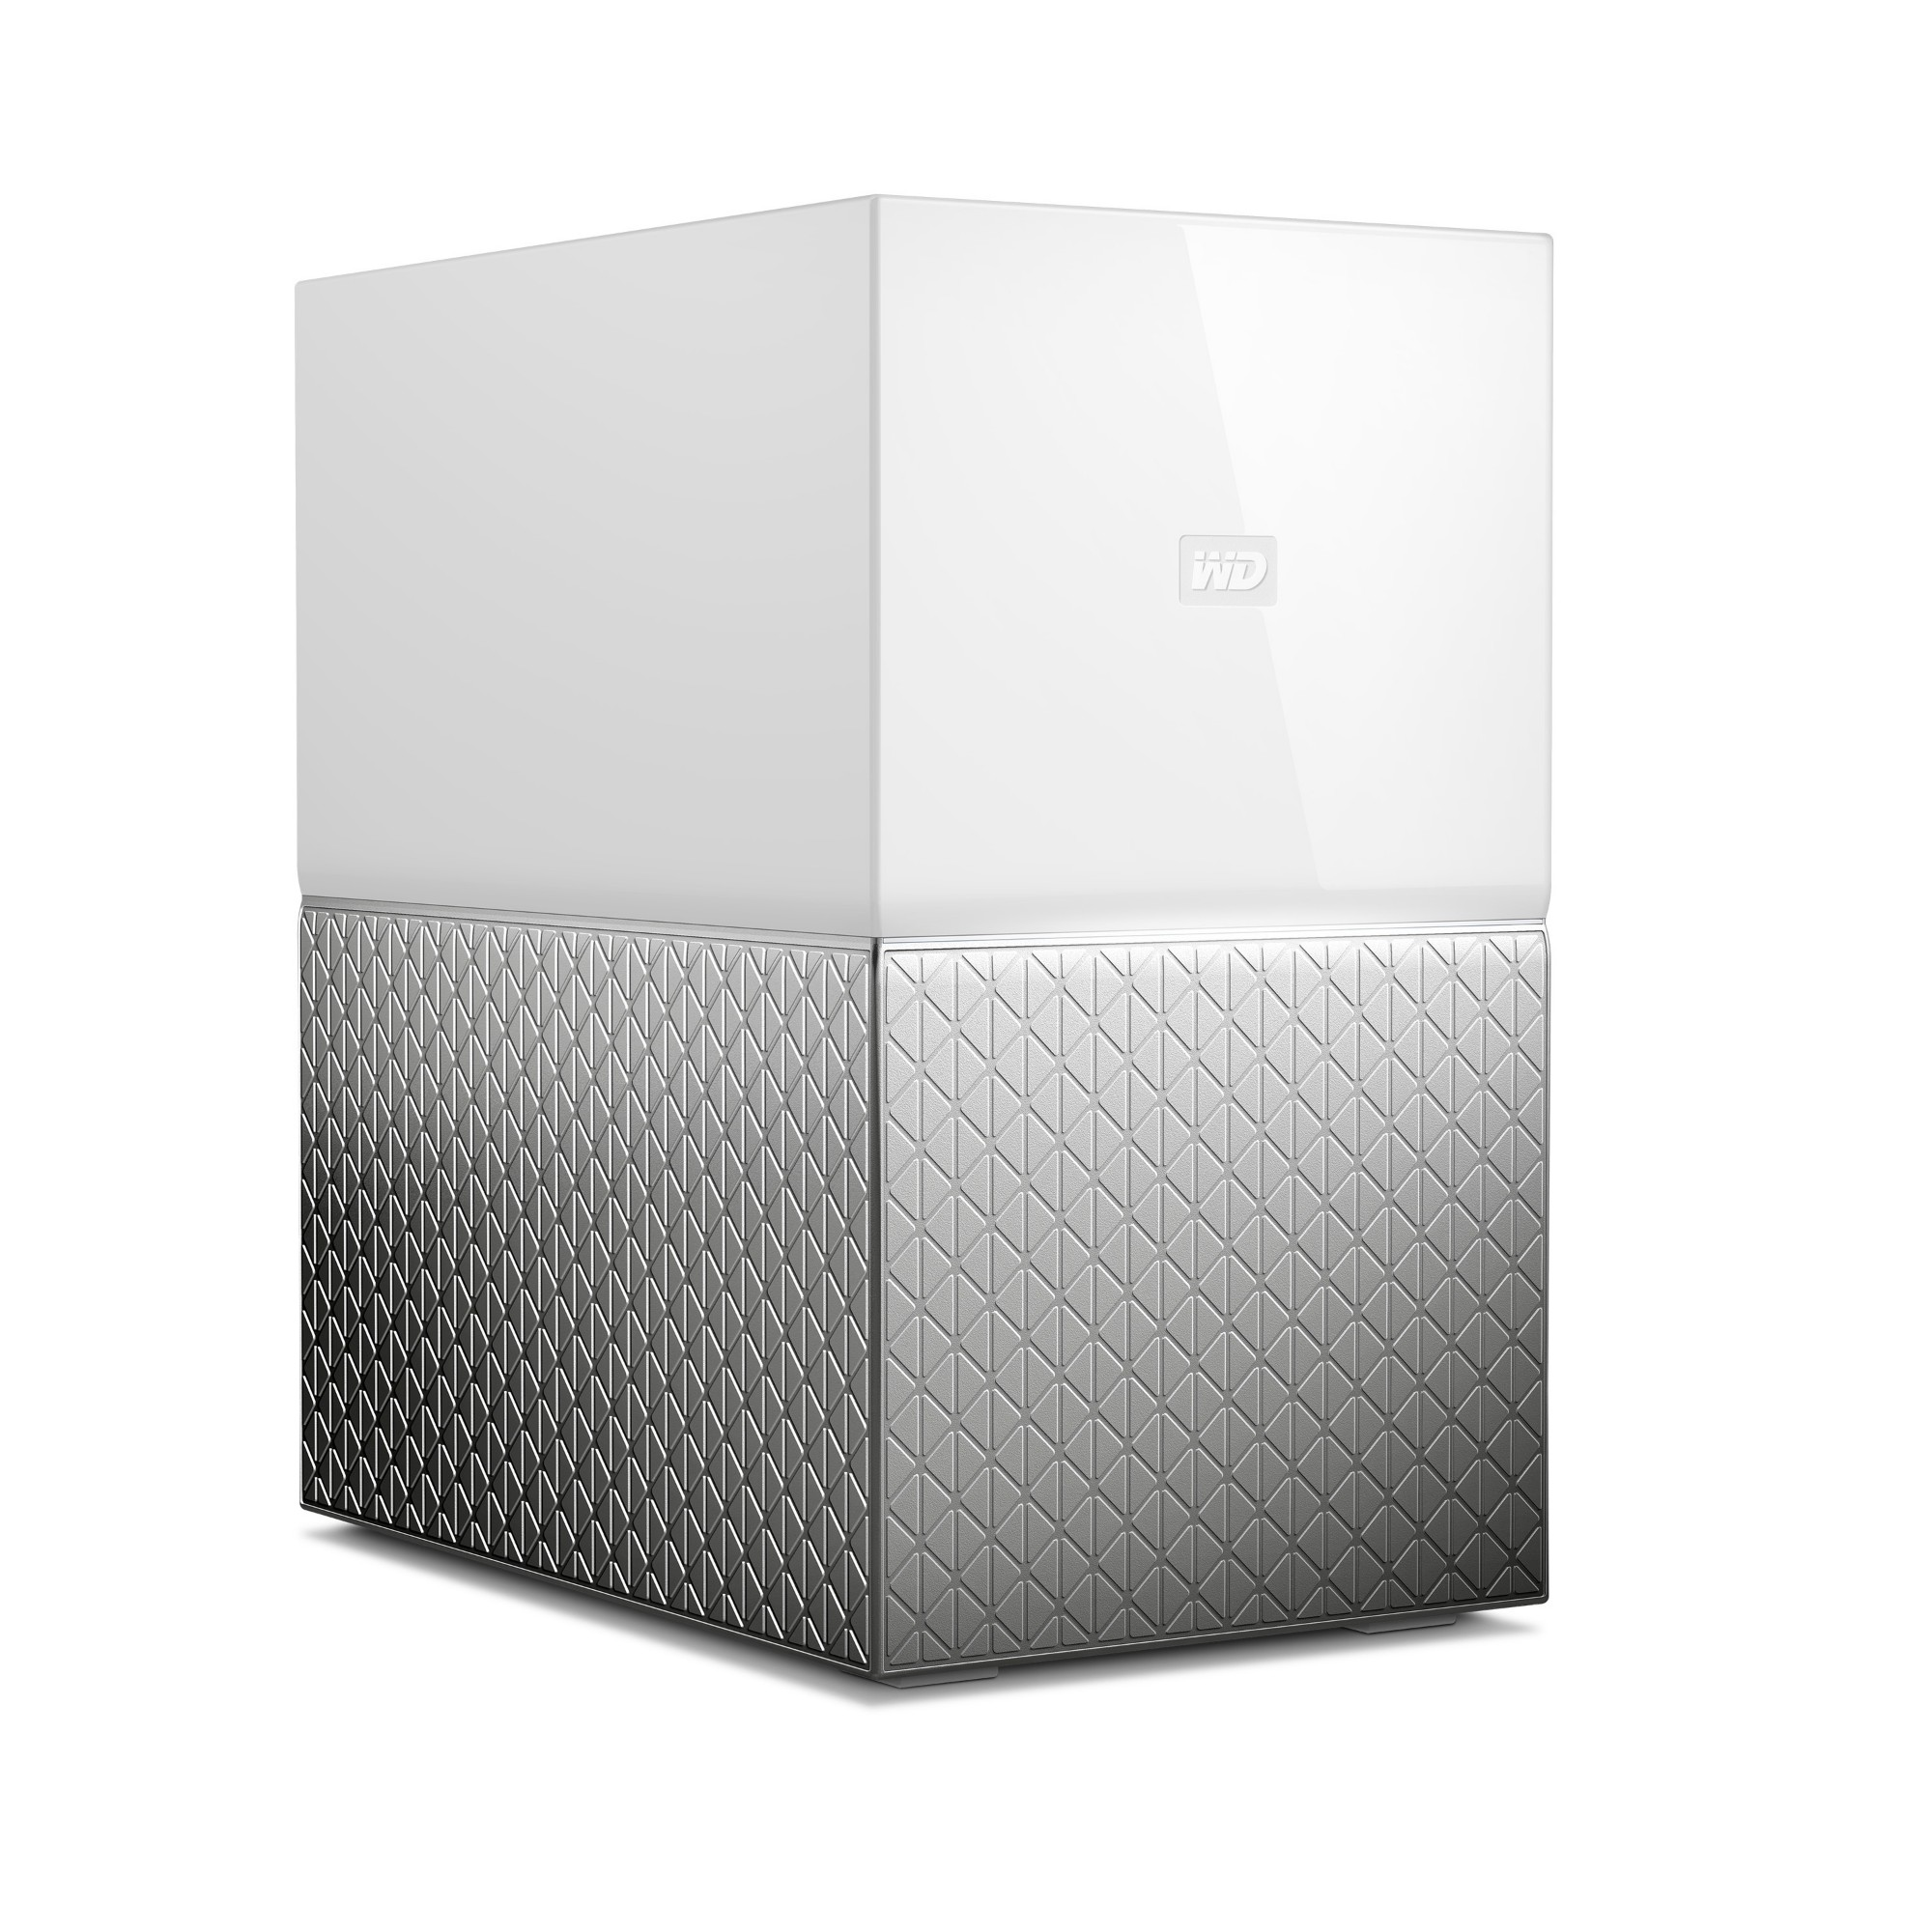 WESTERN DIGITAL MY CLOUD HOME DUO 16TB ETHERNET LAN WHITE PERSONAL STORAGE DEVICE